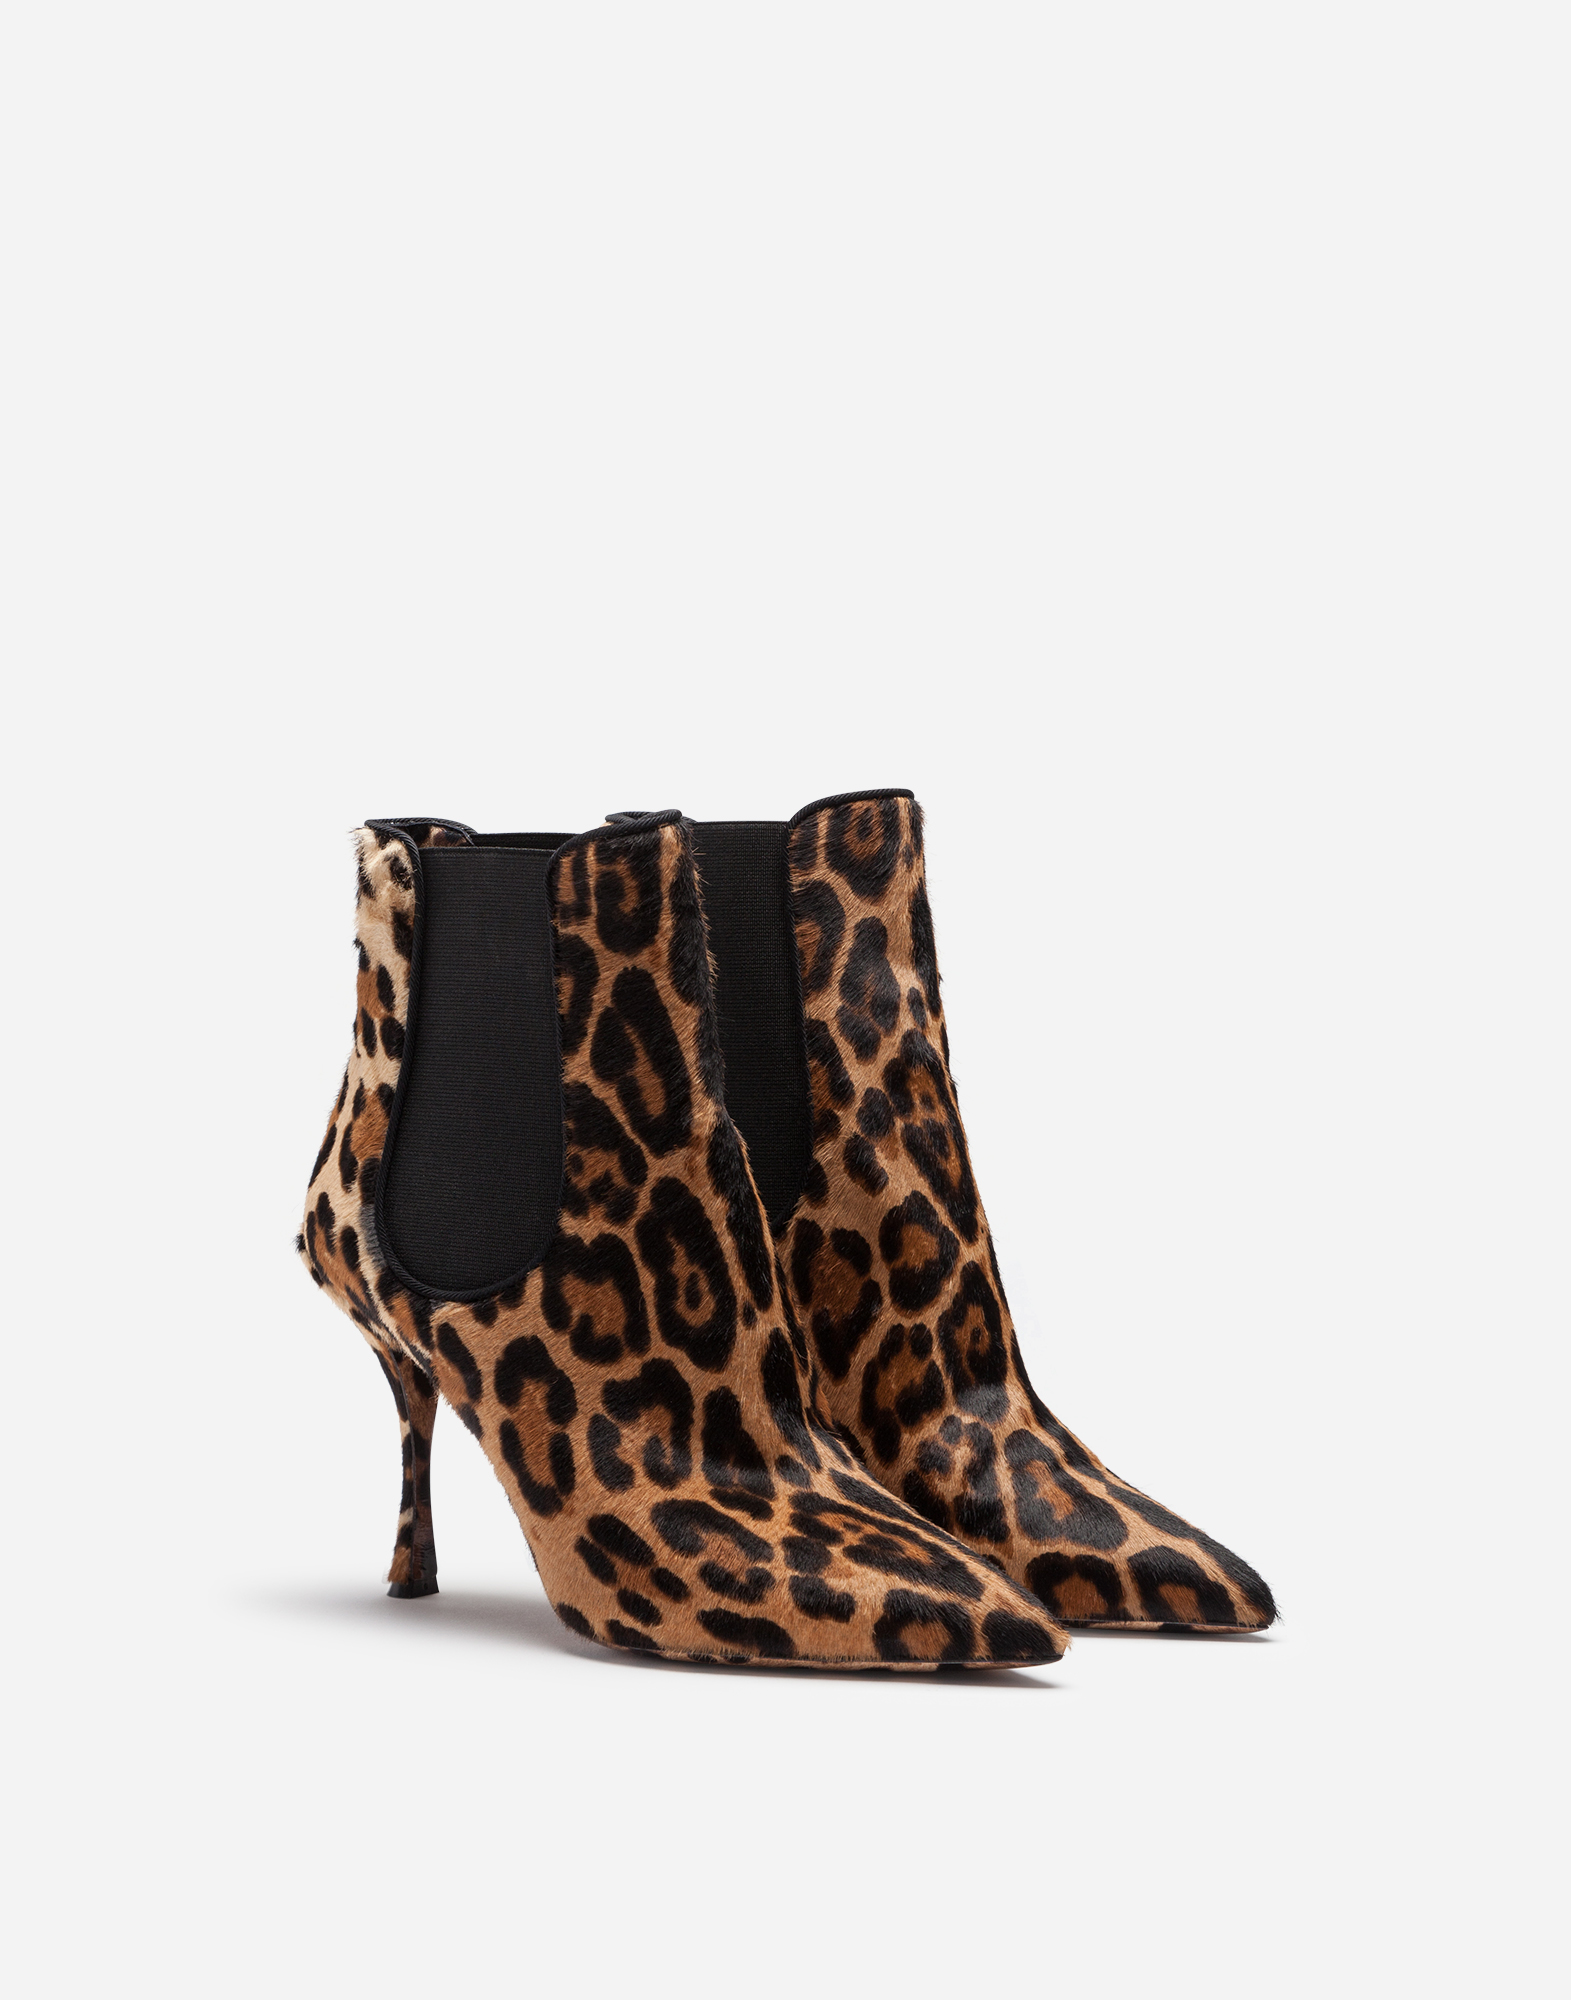 Dolce & Gabbana PONY ANKLE BOOT IN LEOPARD PRINT